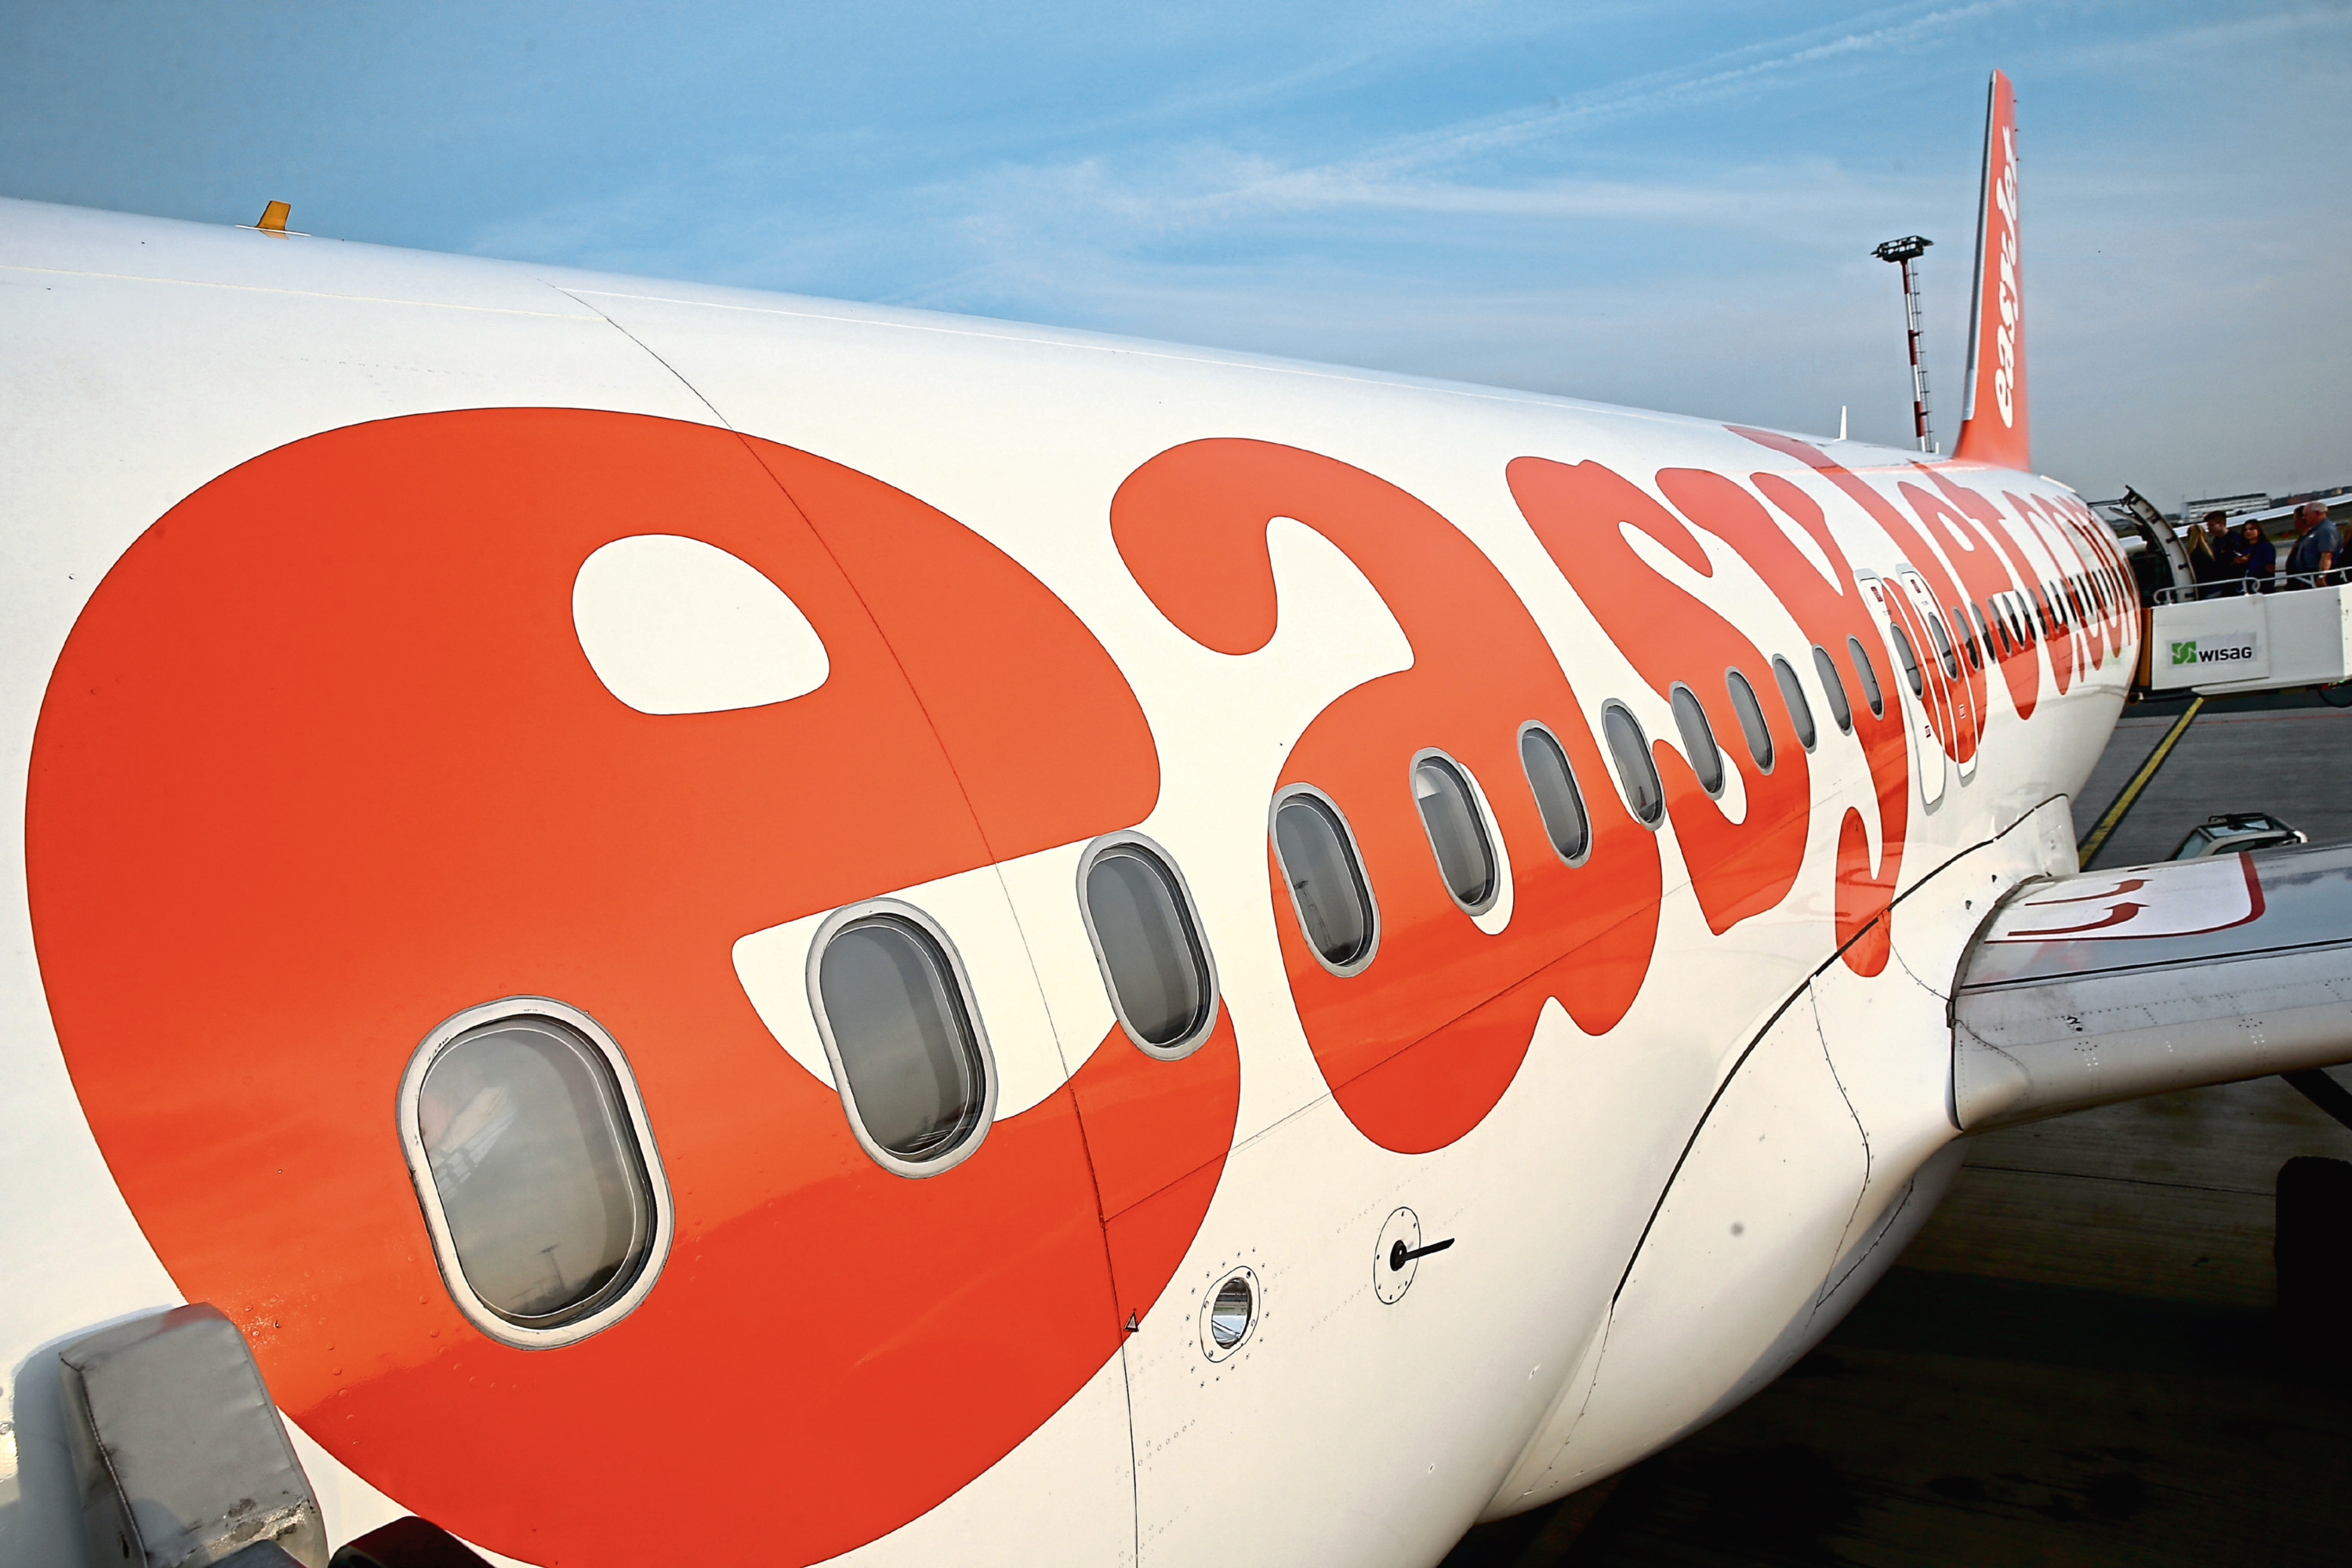 easyJet chiefs have apologised